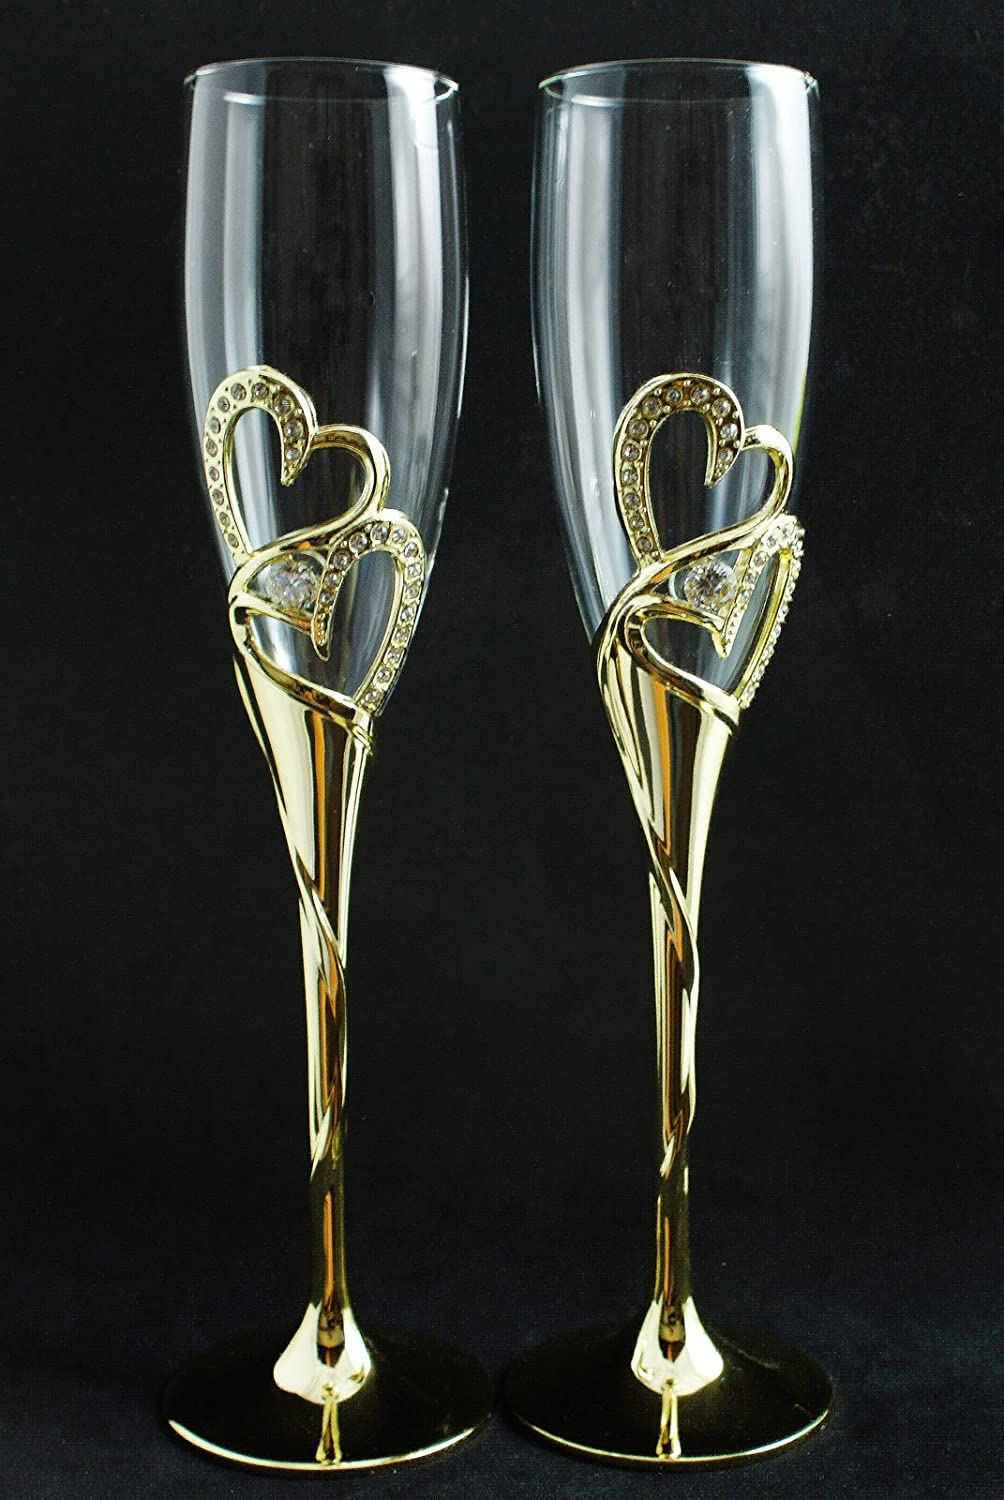 Gold Special Campaign Free shipping anywhere in the nation Double Heart Diamond Wedding Flute Set Glasses Toasting